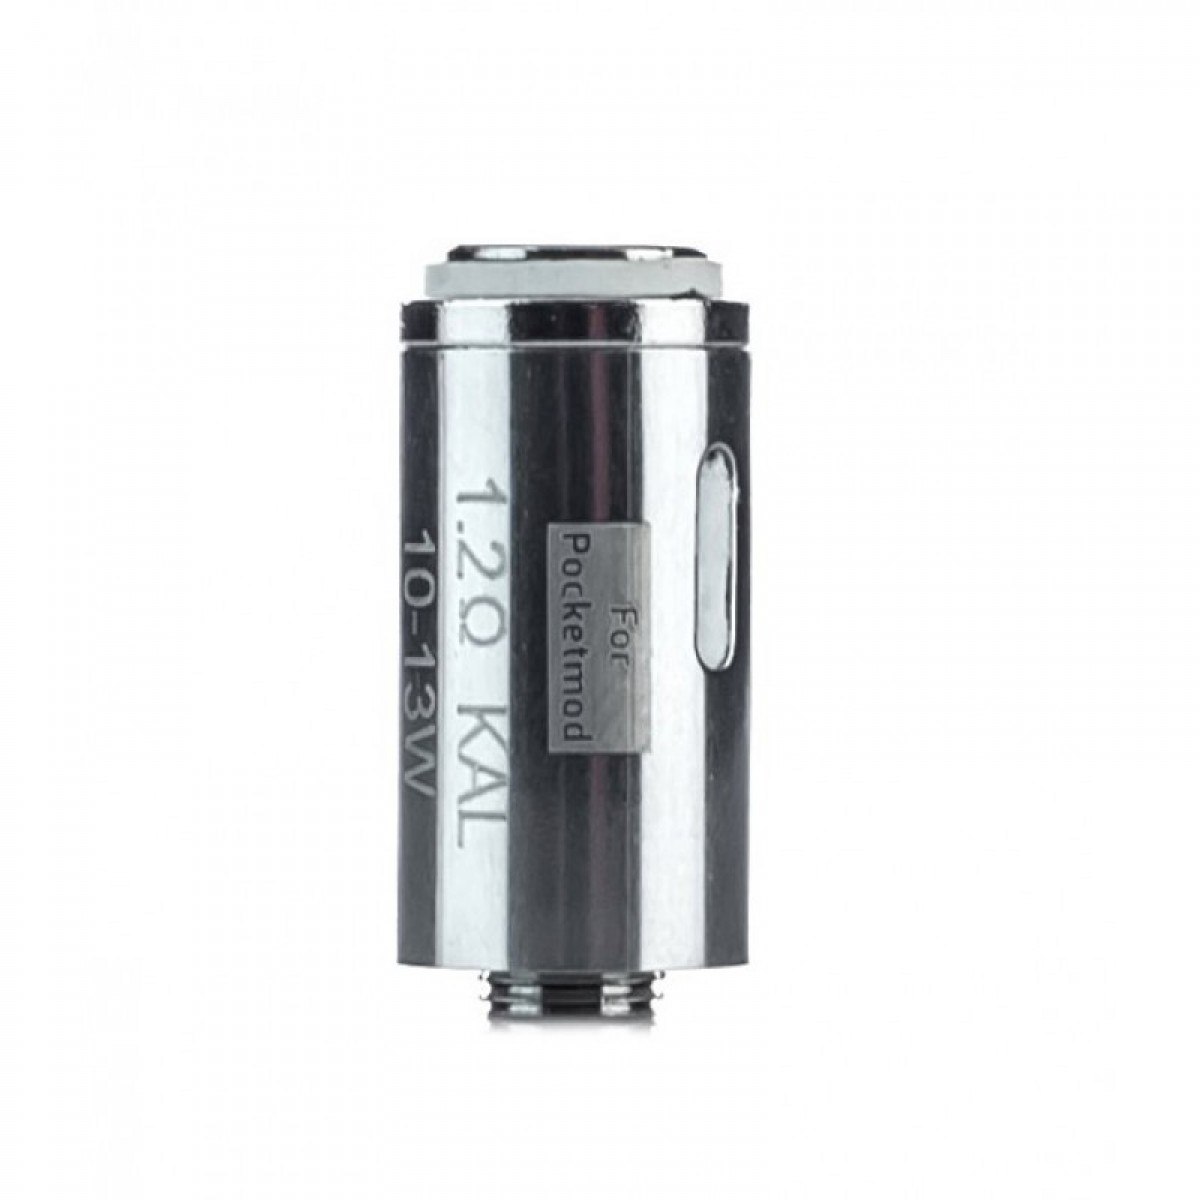 Innokin Slipstream